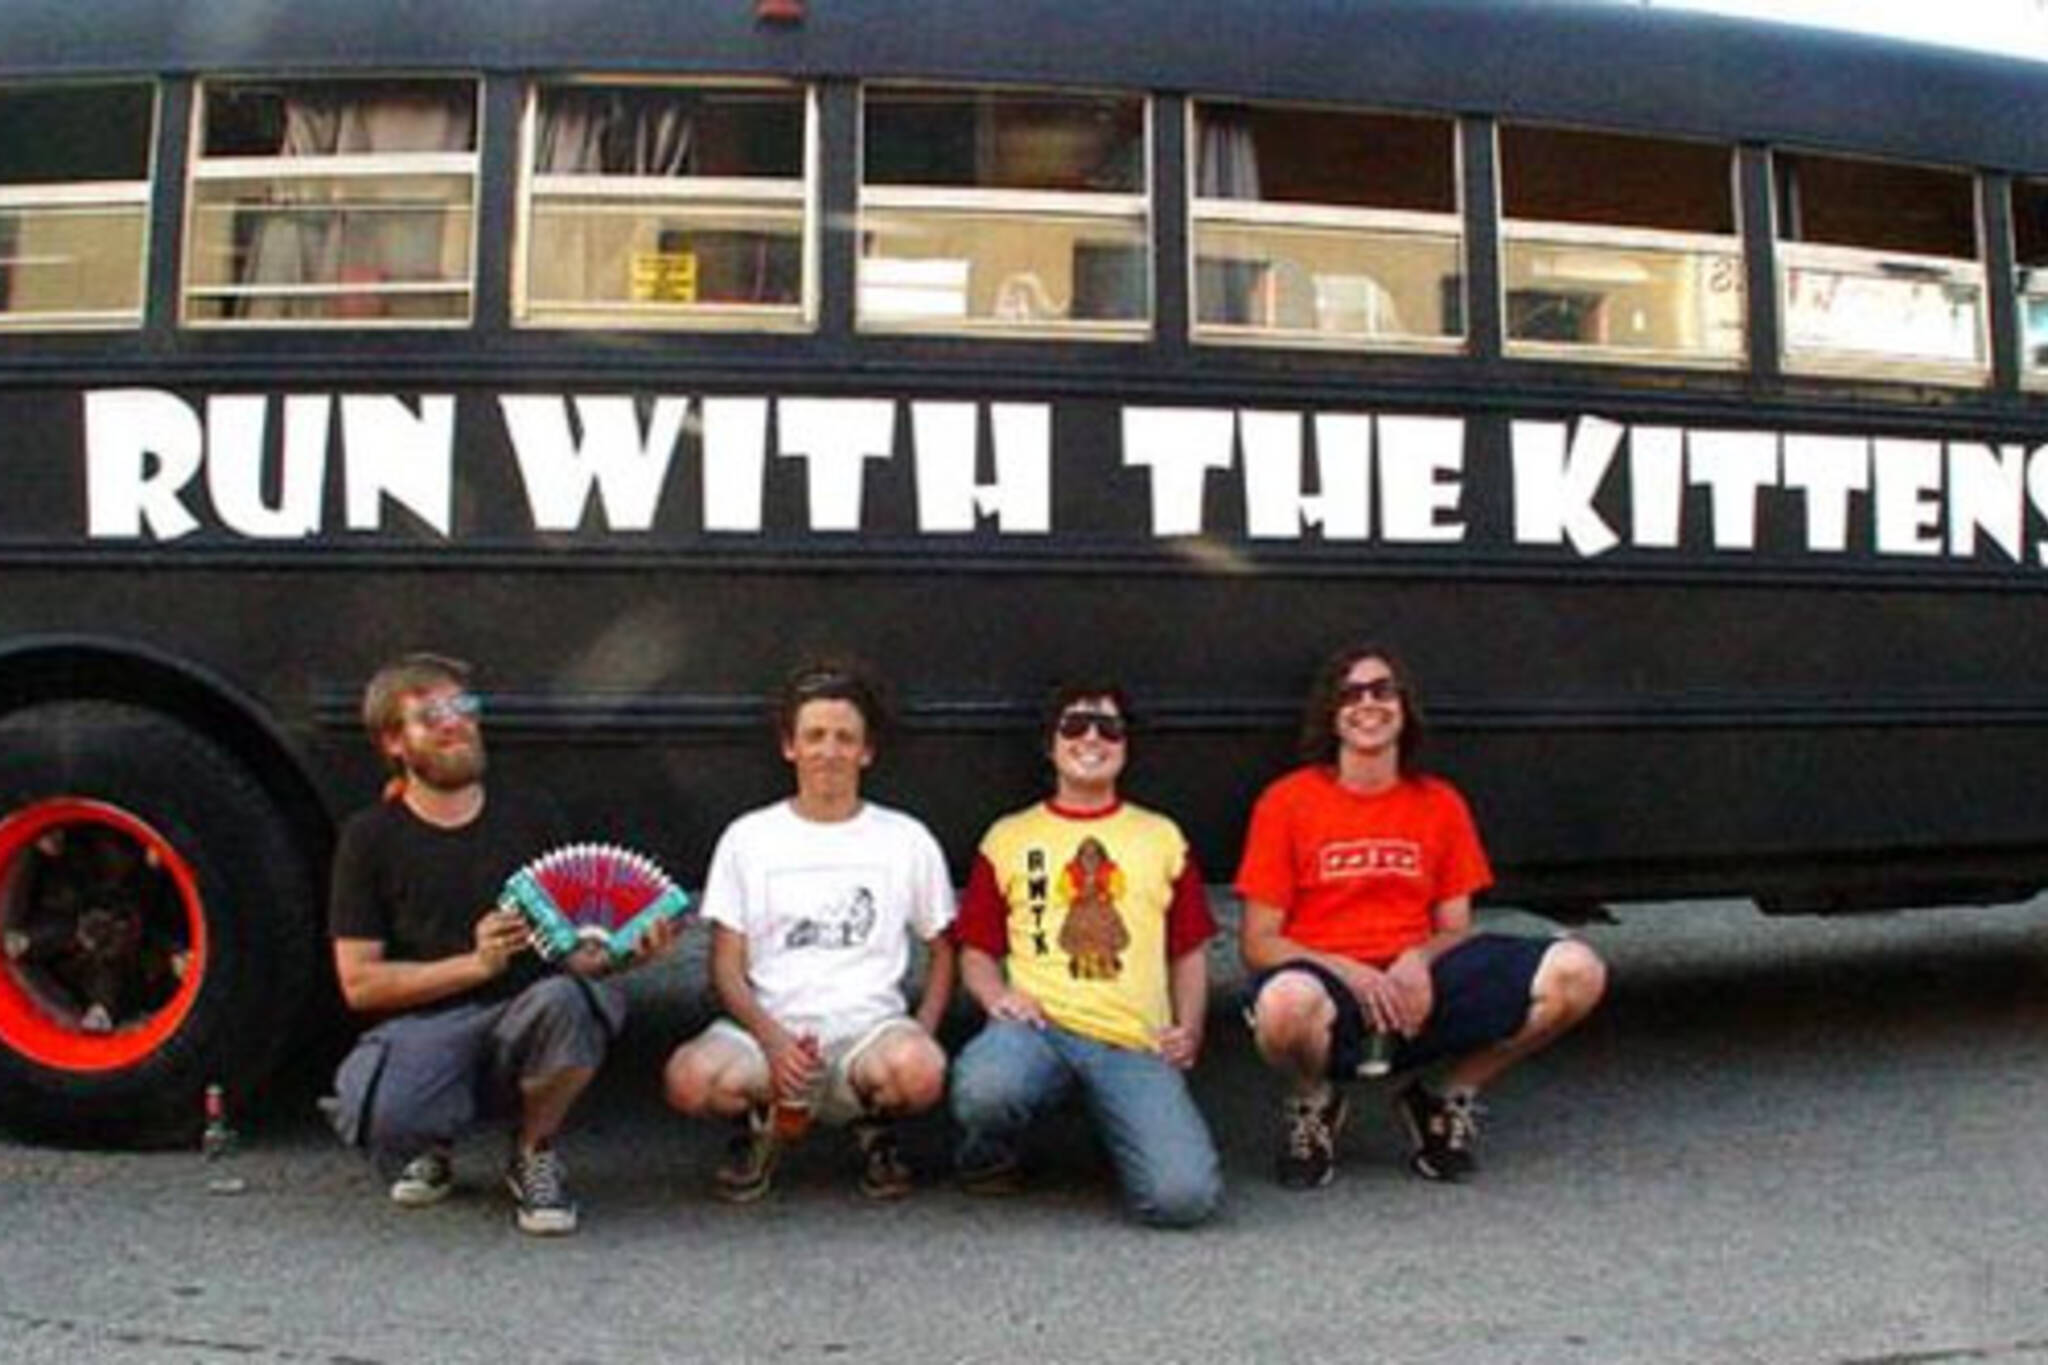 Run with the Kittens and their legendary tour bus